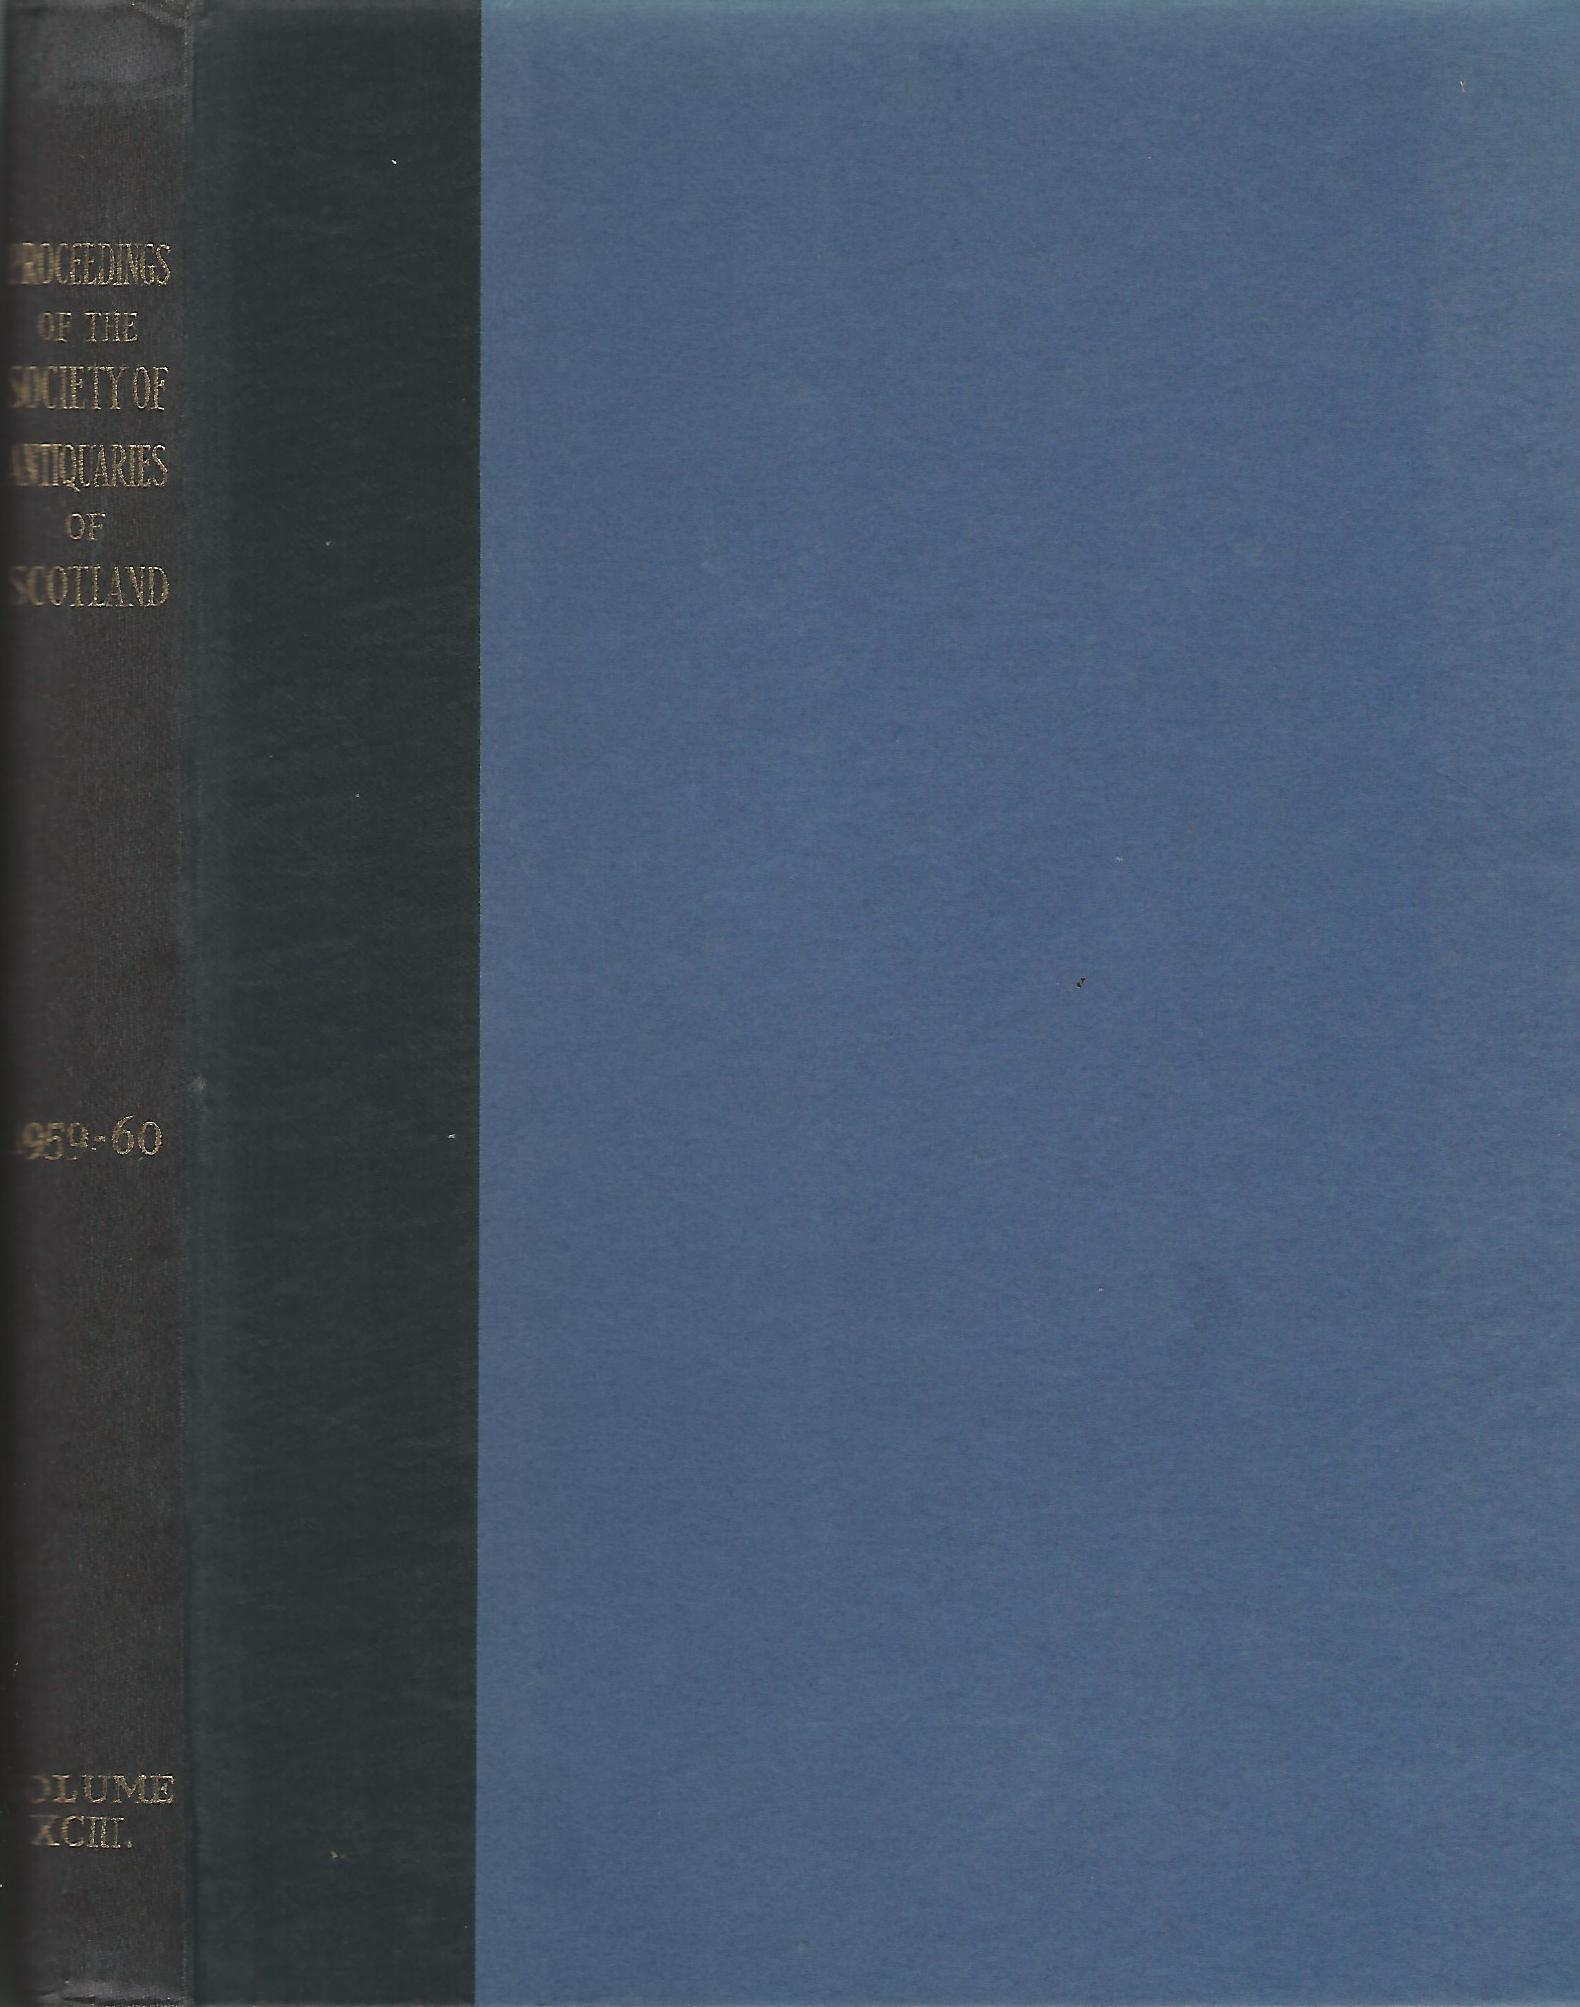 Image for Proceedings of The Society of Antiquaries of Scotland Volume XCIII 1959-1960